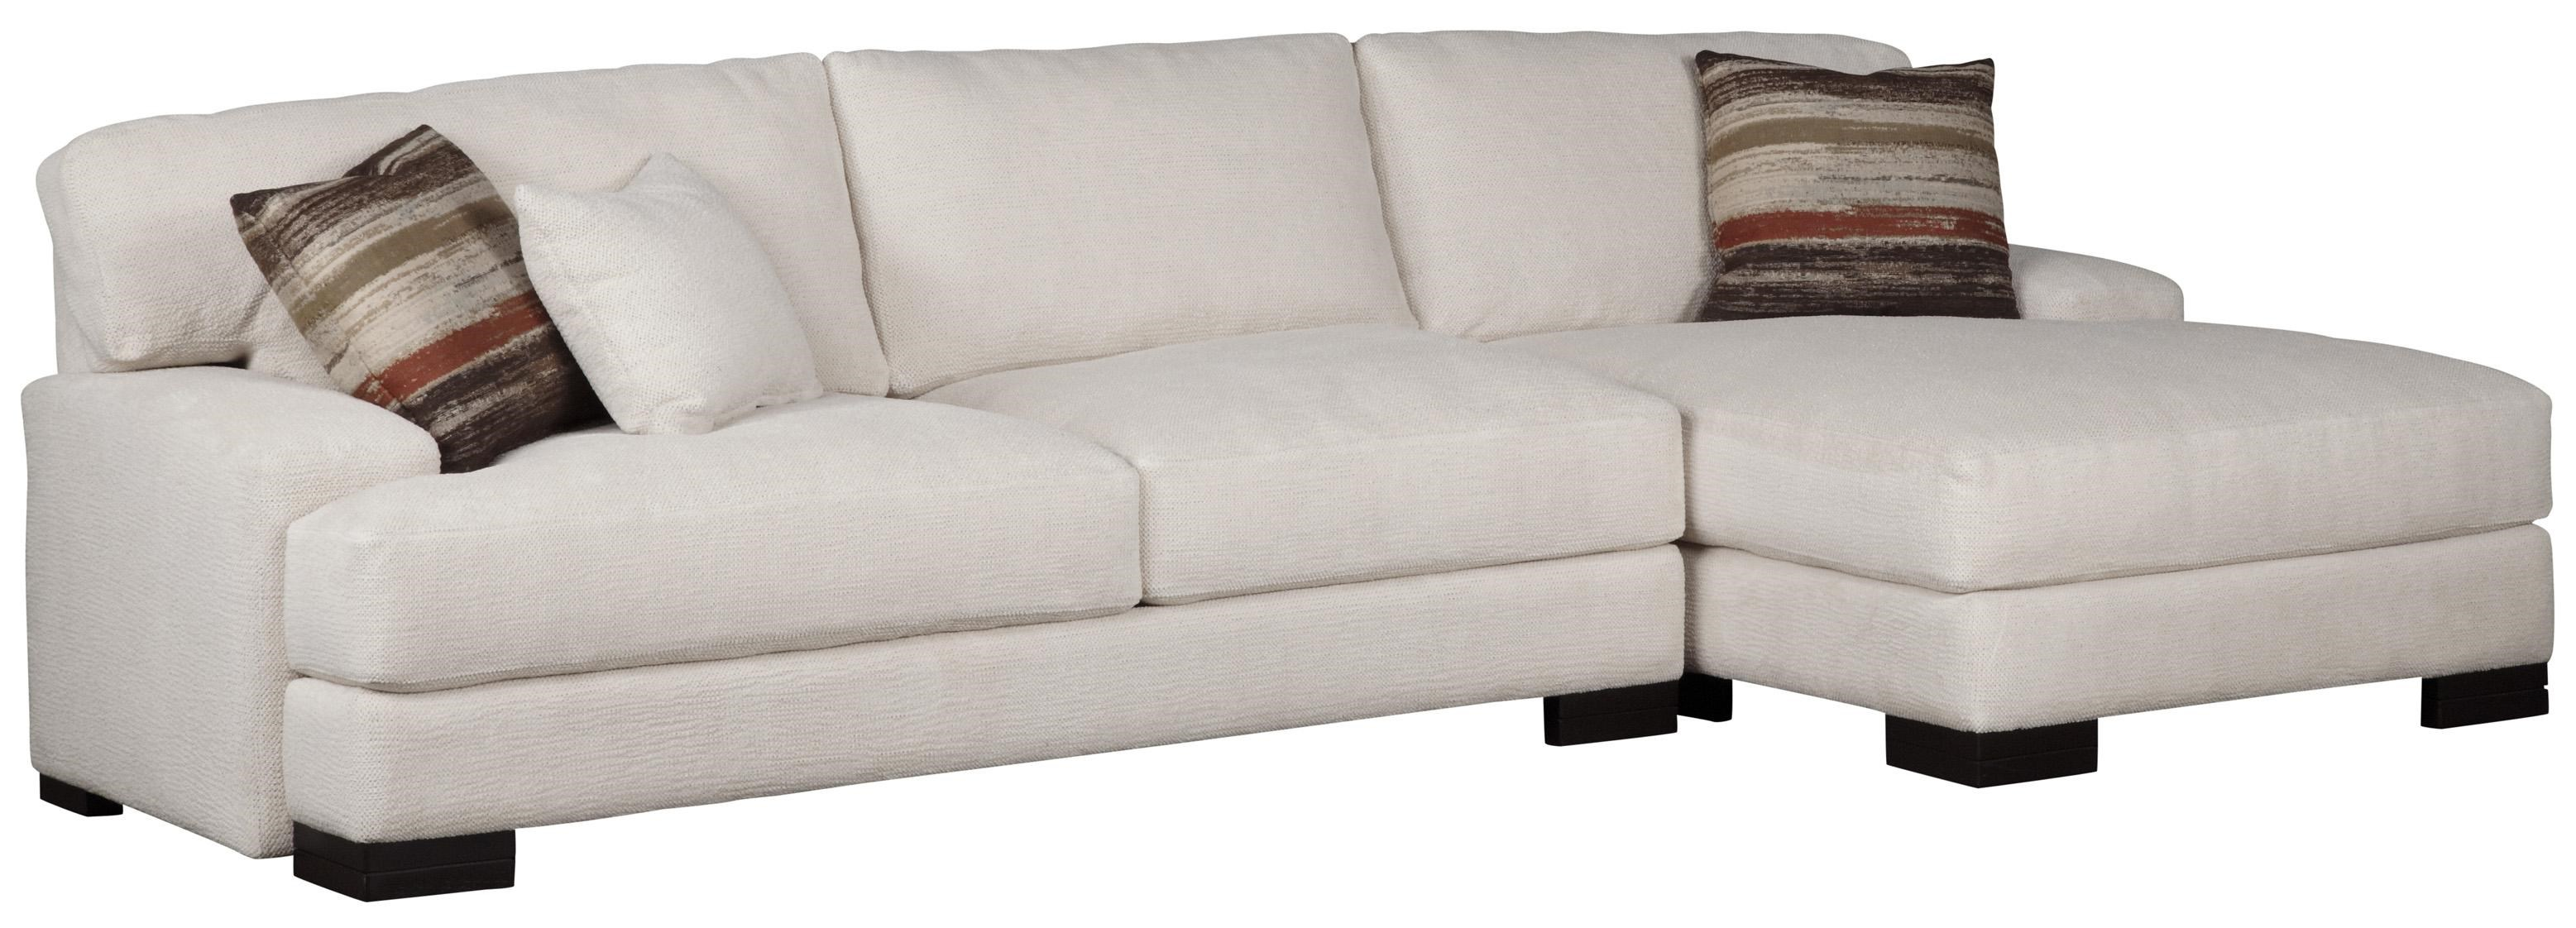 Charmant Jonathan Louis Burton Sectional With Chaise ...